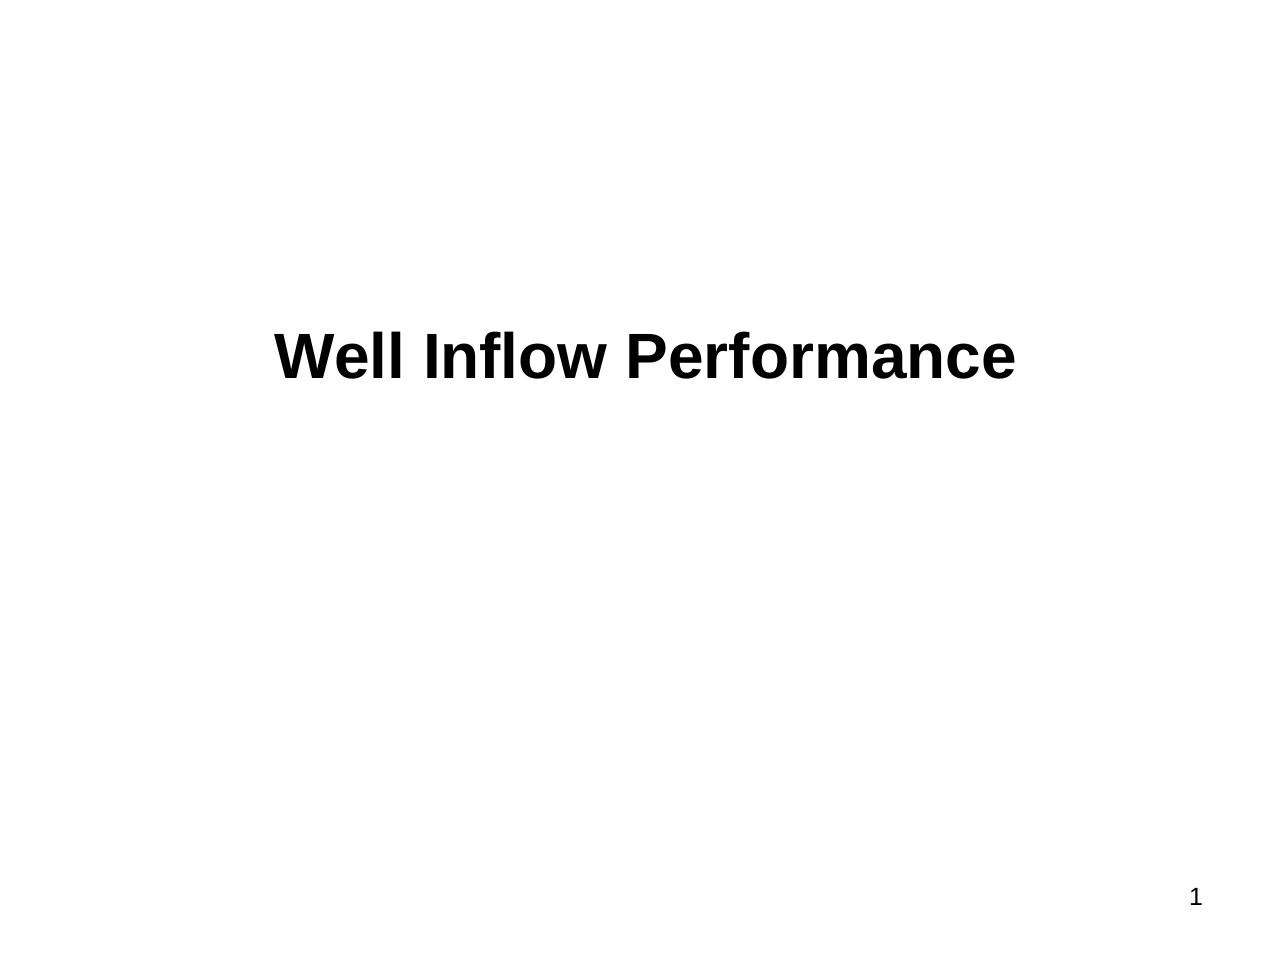 2.5 Well inflow performance1_1 (2).pdf - page 1/60